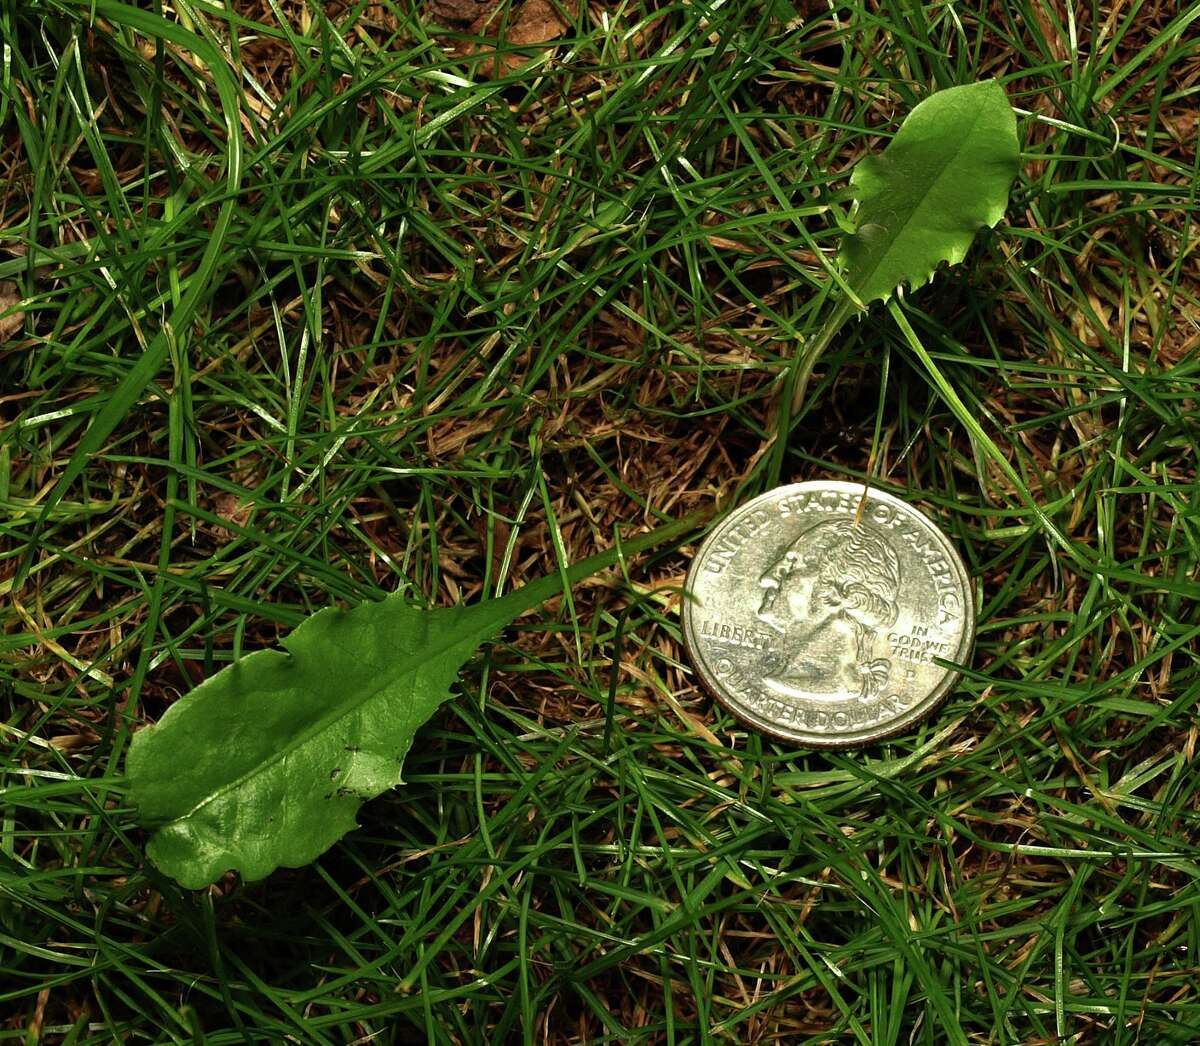 Late summer dandelion seedling. (Photo by Peter D. Bowden)